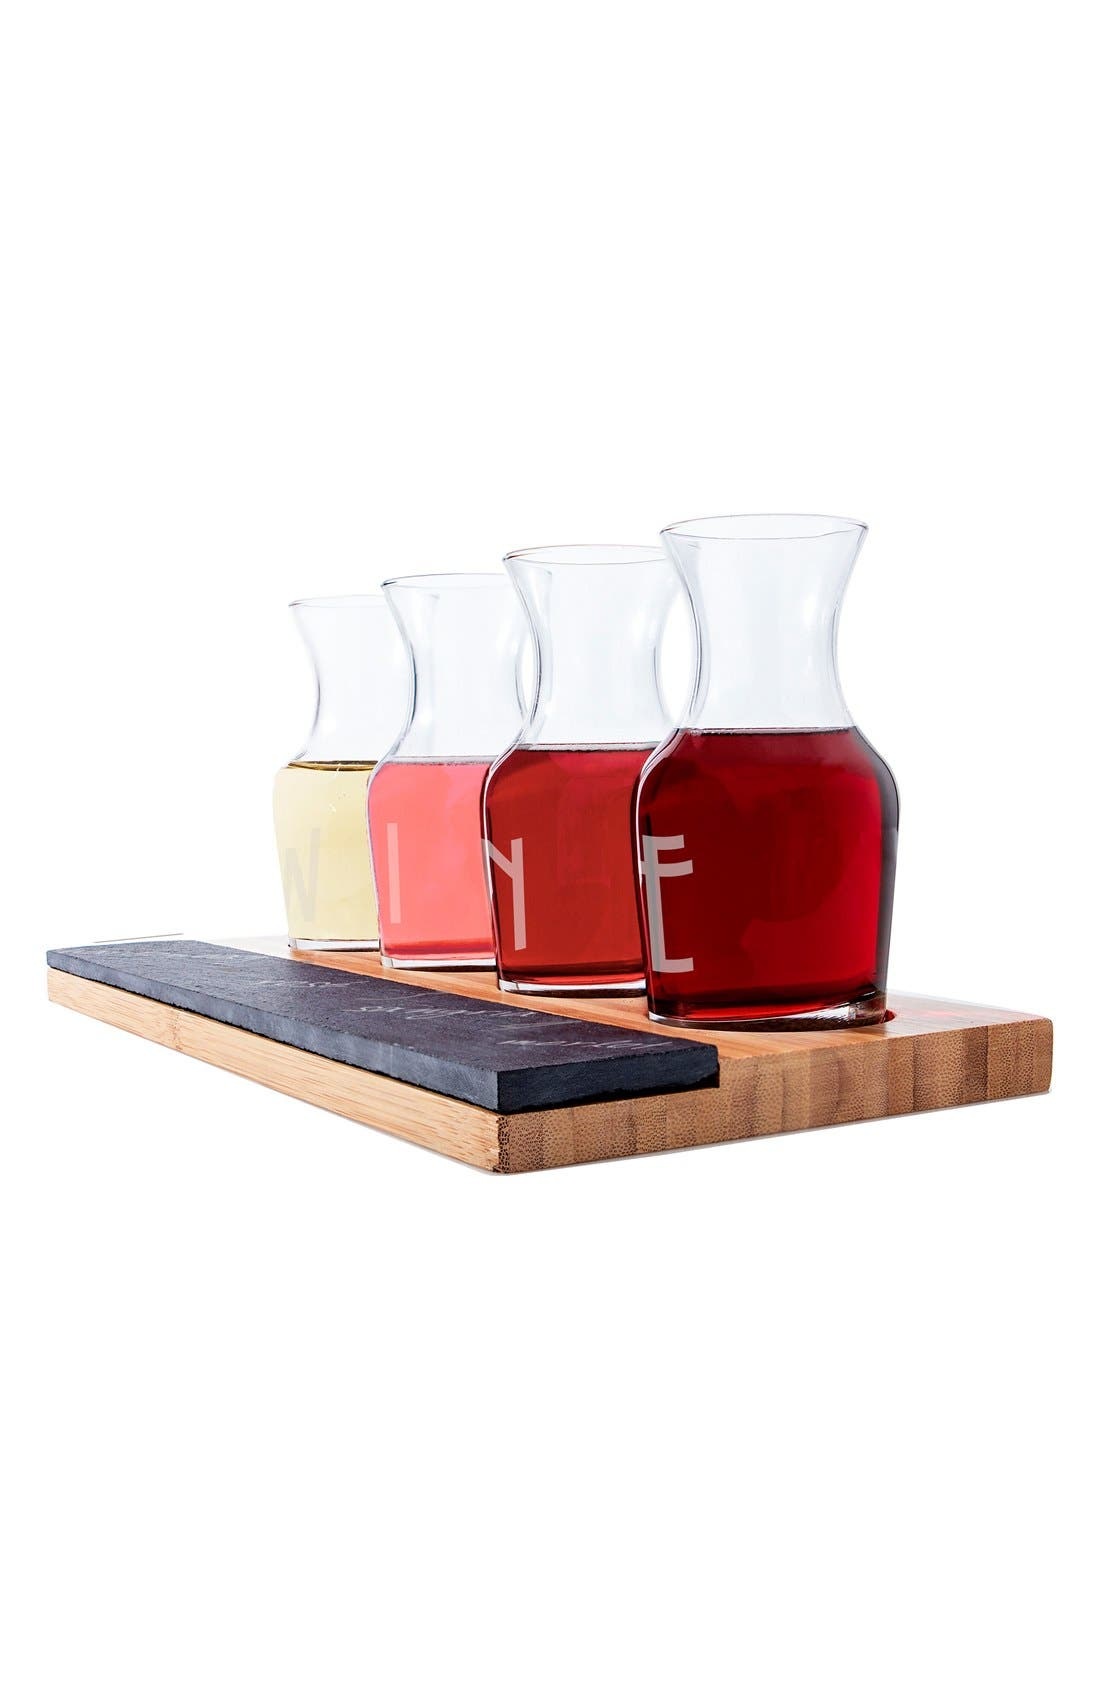 5-Piece Wine Tasting Flight,                             Alternate thumbnail 5, color,                             200